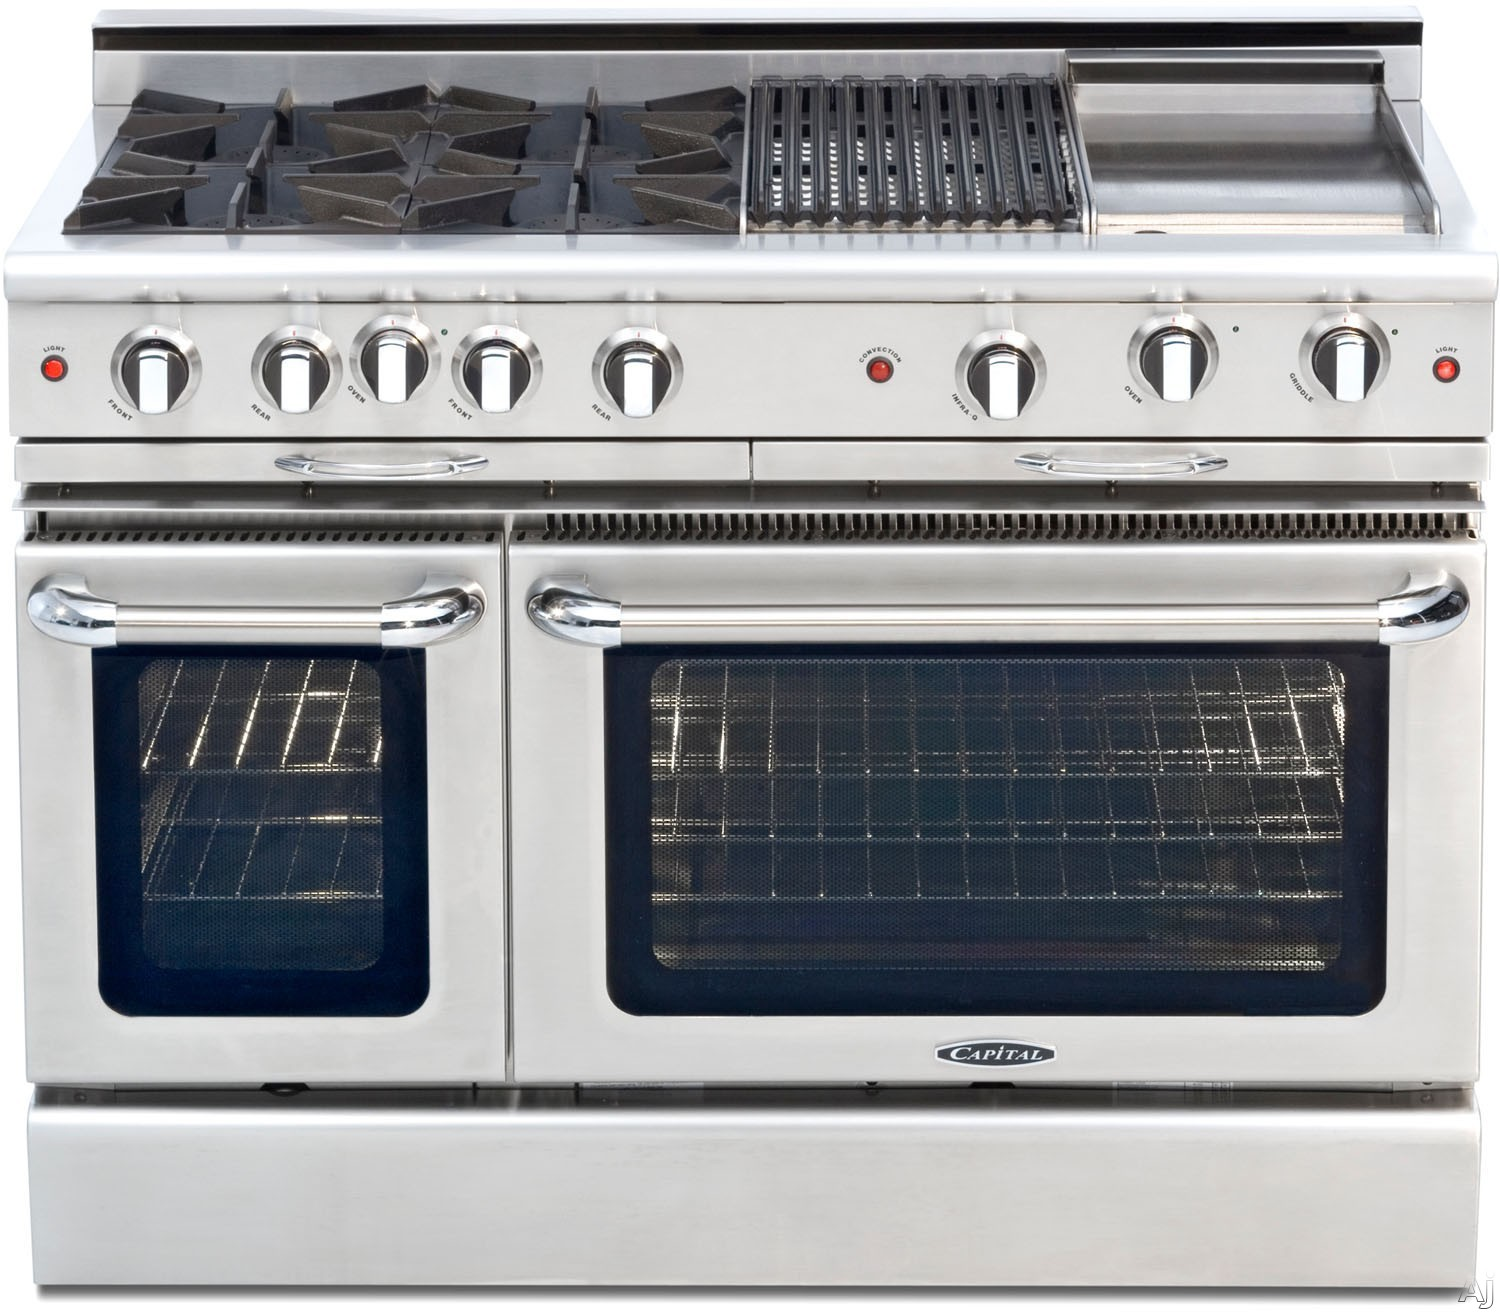 "Capital Culinarian Series CGSR484BG 48 Inch Pro-Style Gas Range with 4 Open Burners, Moto-Rotisâ""¢ Rotisserie, Self Clean, 12"""" Thermo Griddle, 12"""" Grill, Flex-Rollâ""¢ Oven Racks, 4.6 cu. ft. Convection Oven and 2.1 cu. ft. Secondary Oven"" CGSR484BG"